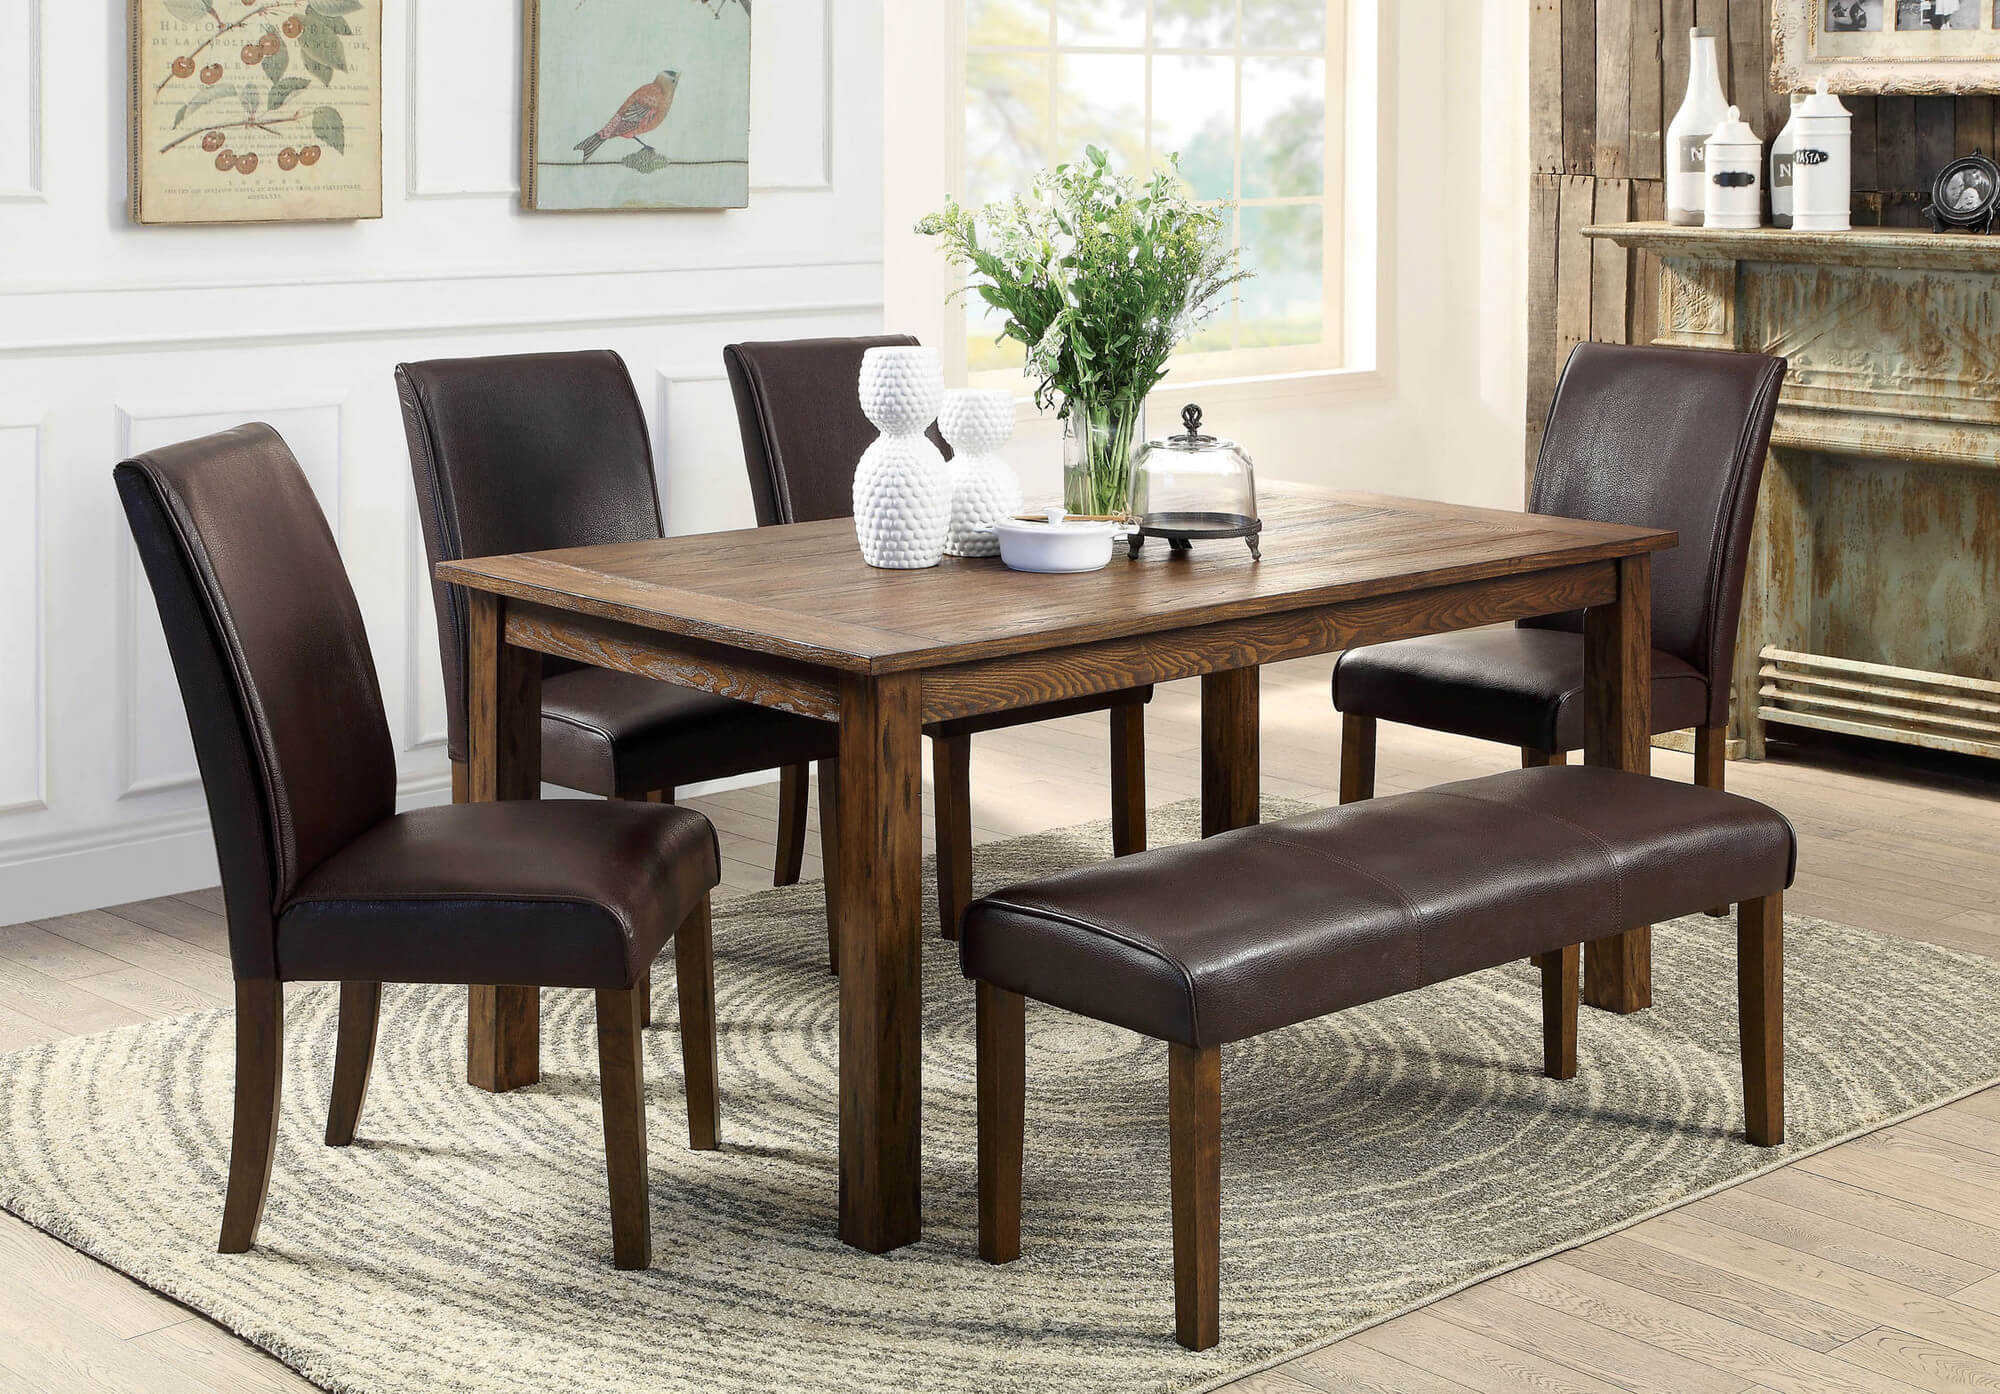 dining room sets bench seating small kitchen table set Here s a rustic rectangle dining table with fully cushioned chairs and bench This look works